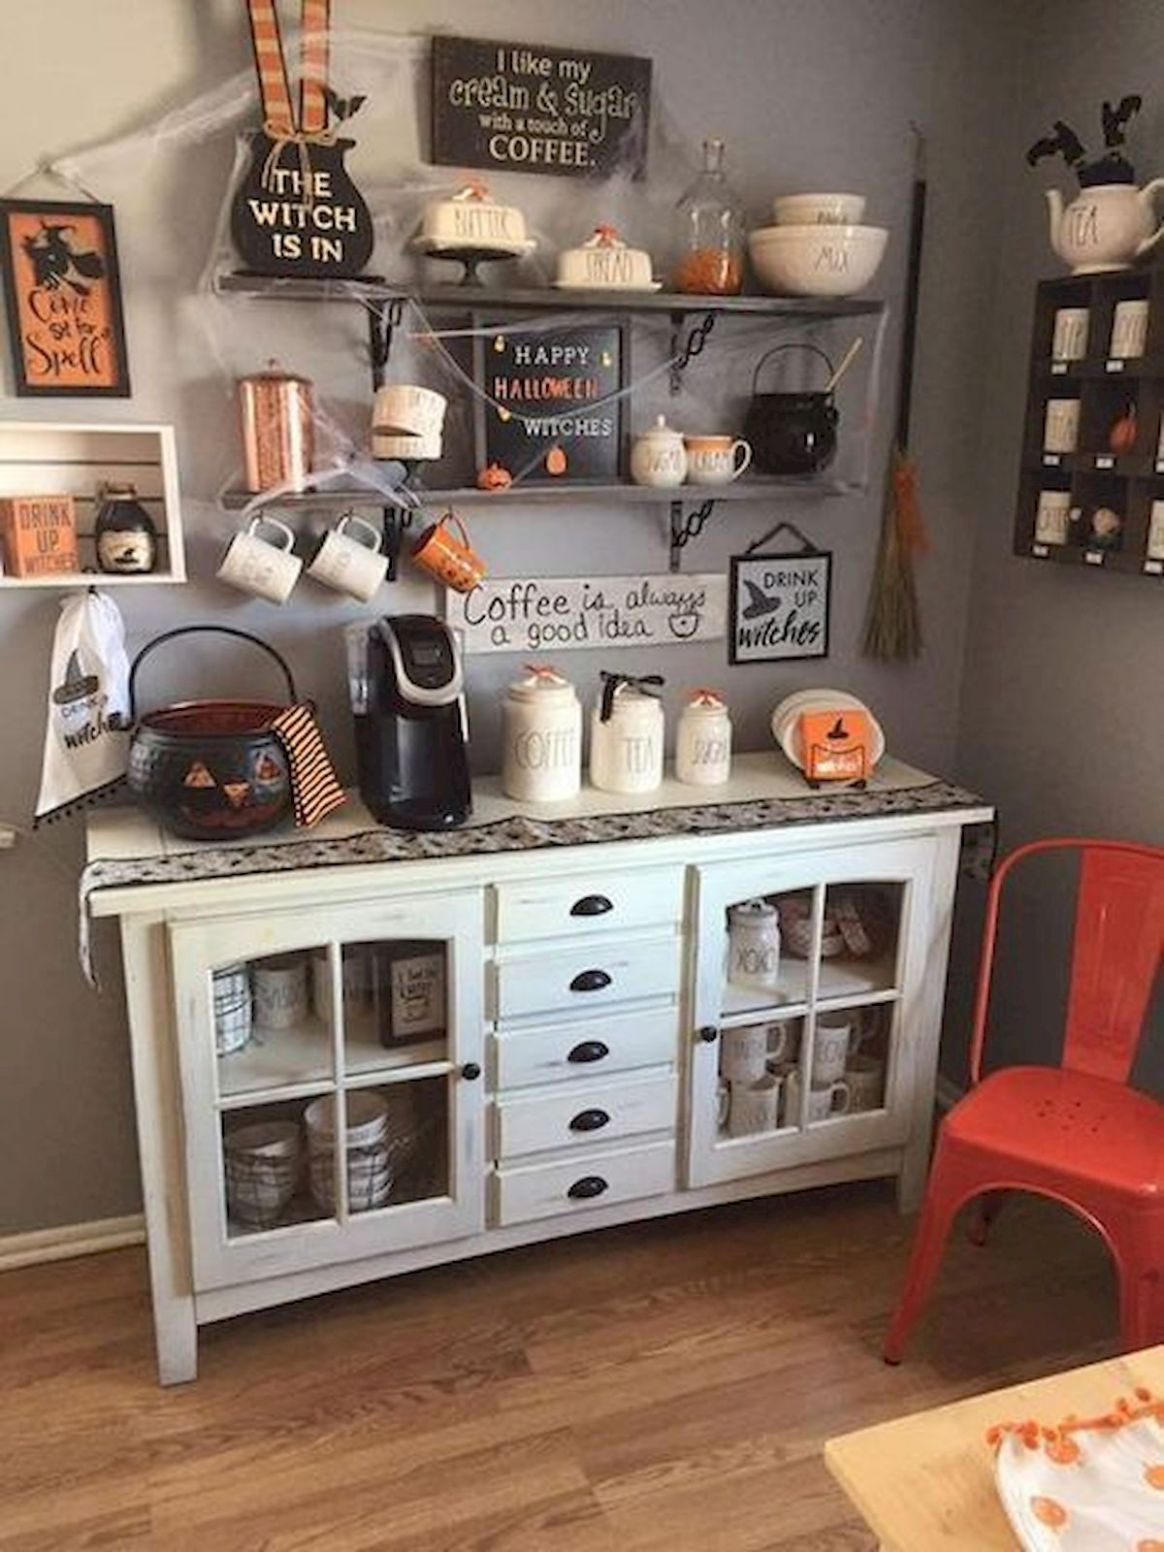 8 Cool Kitchen Cabinet Ideas for Halloween - bozideas